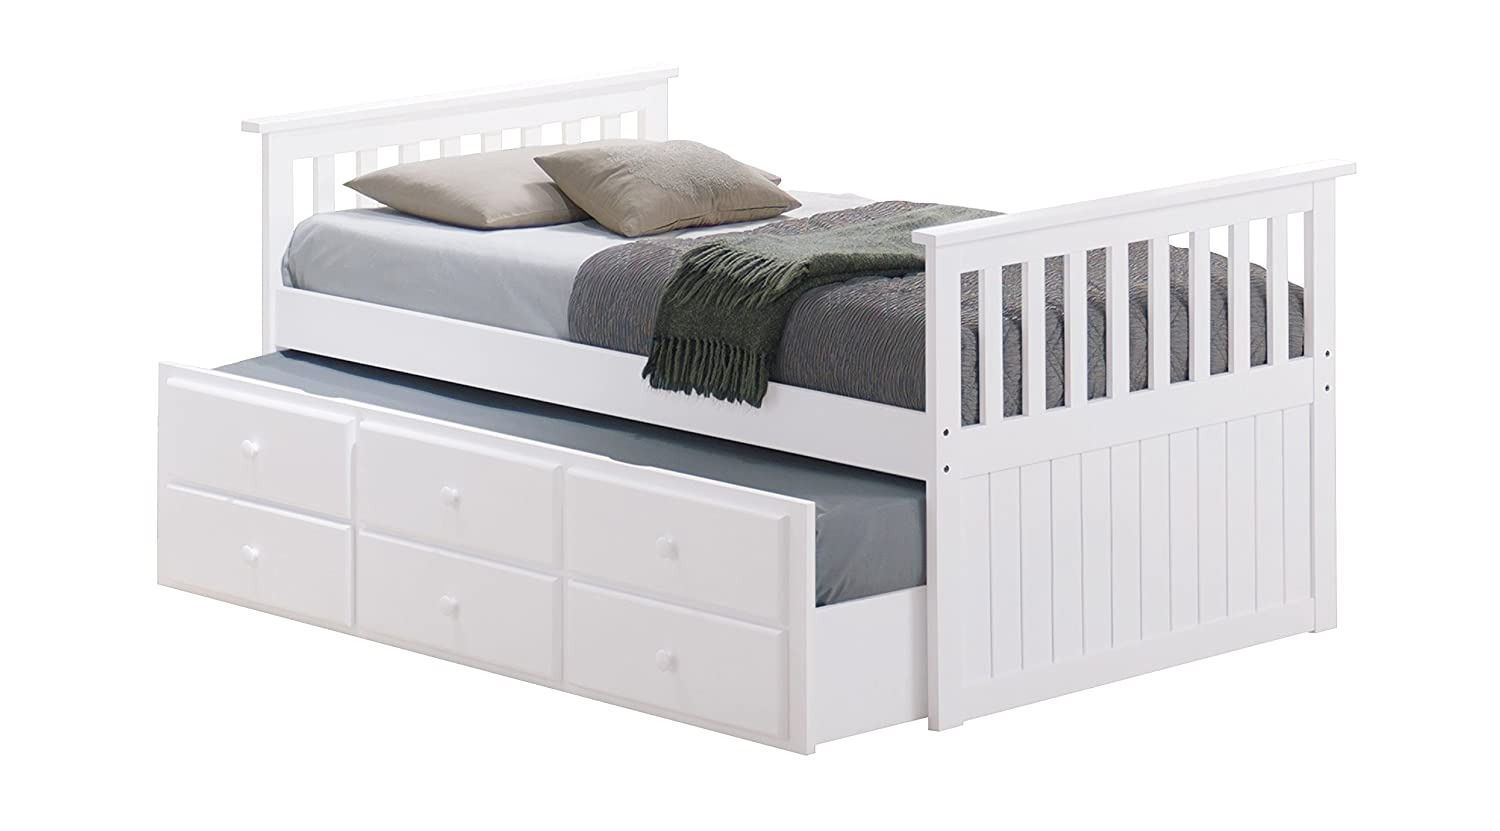 Broyhill Kids Marco Island Captains Bed With Trundle Bed And Drawers Twin White Twin Sized Mattress Not Included Bunk Bed Alternative